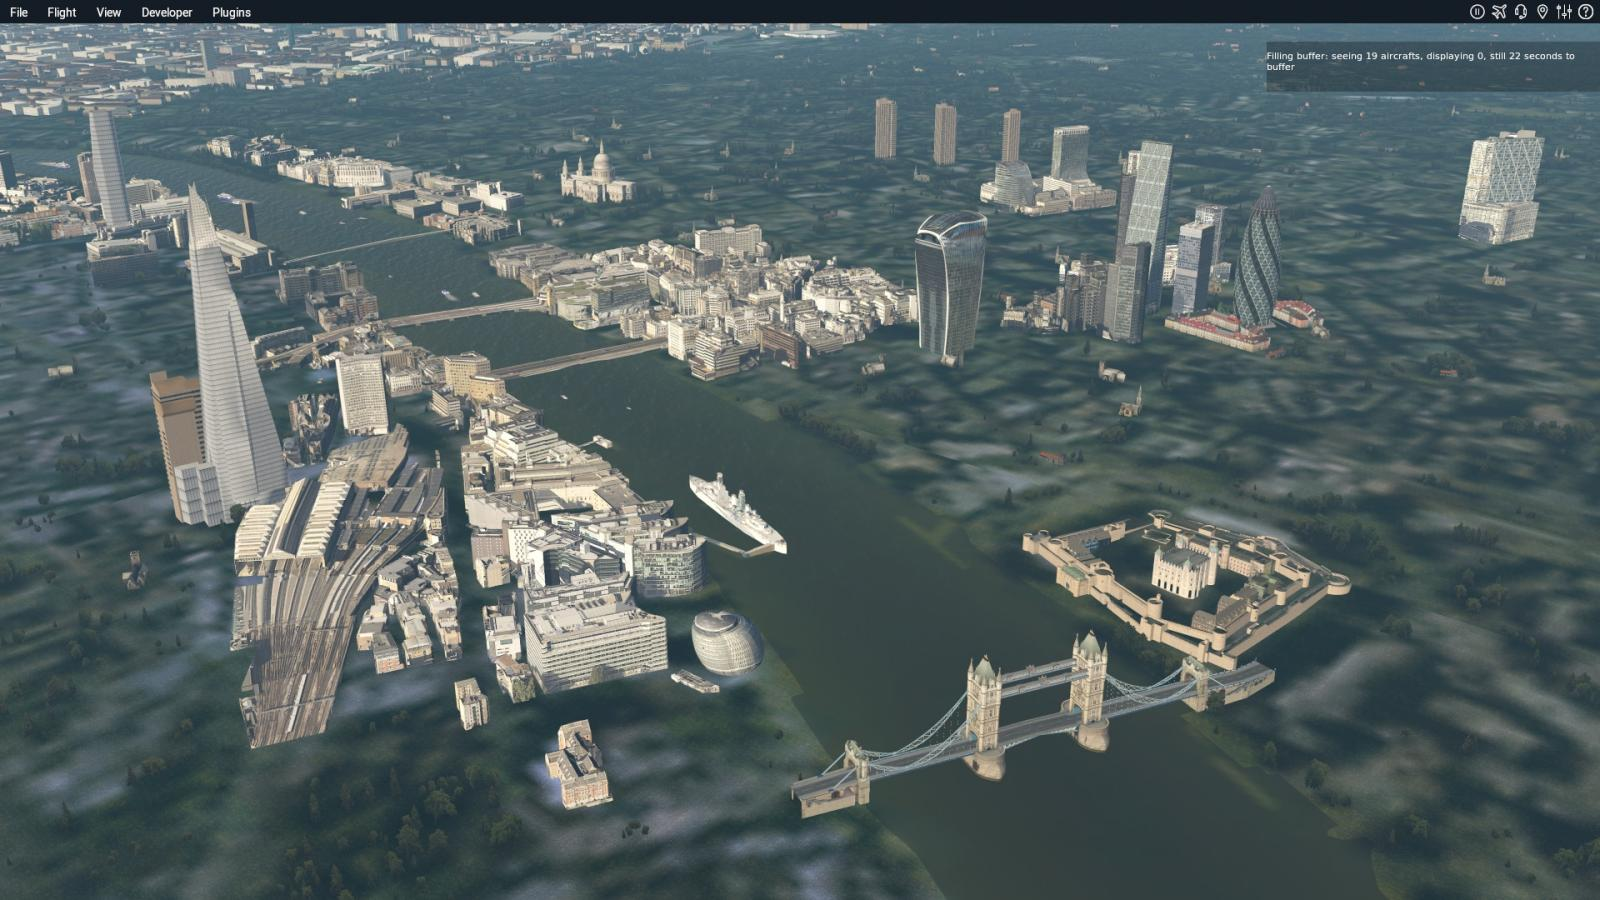 Whats happened to my houses? - General X-Plane Forum - X